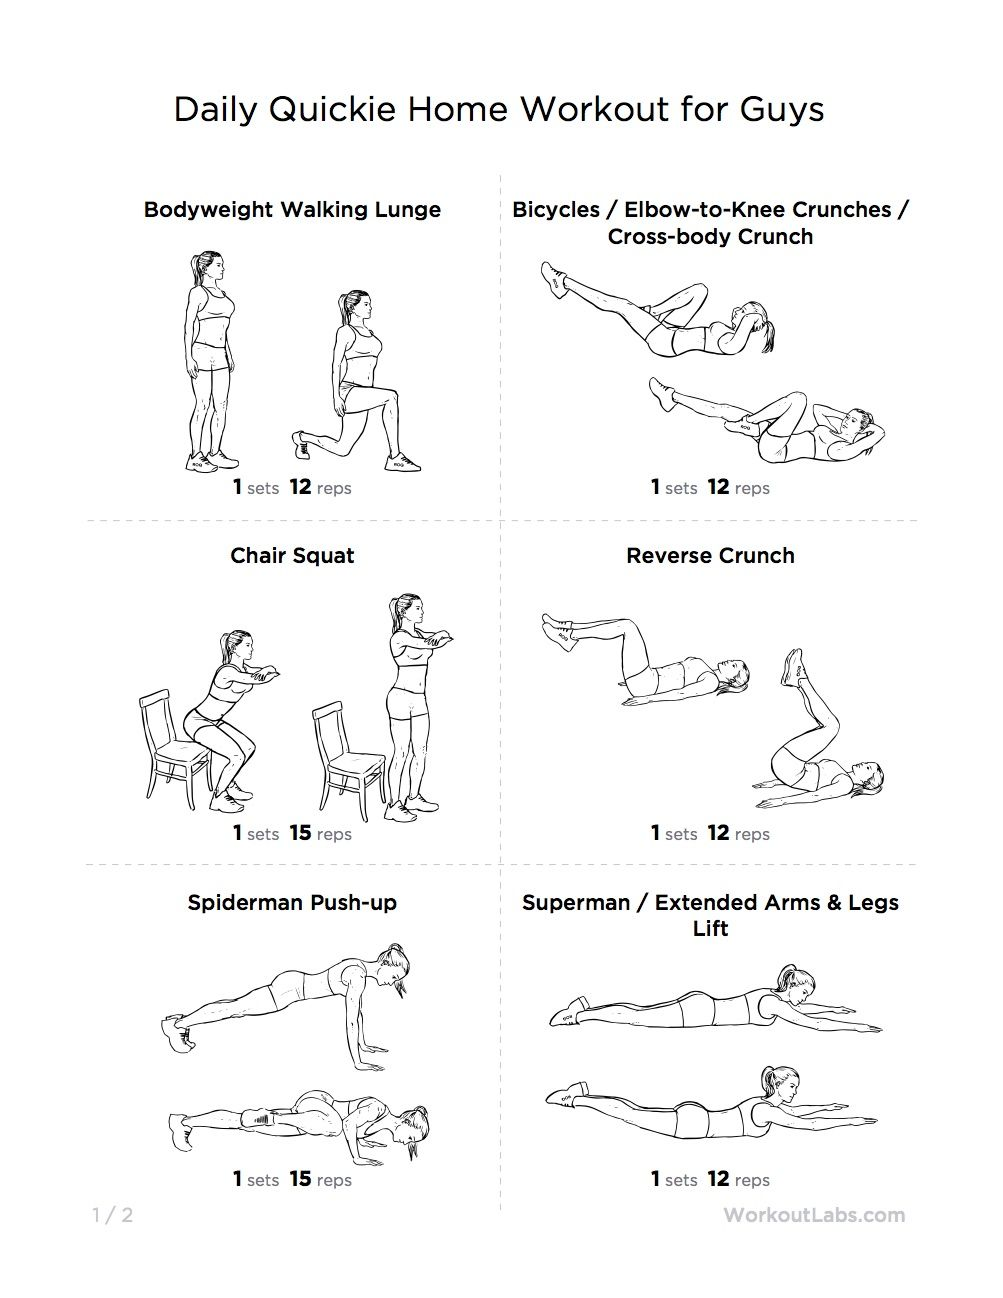 Home Workout Plan For Men workout for men and women | fitness | pinterest | workout, guy